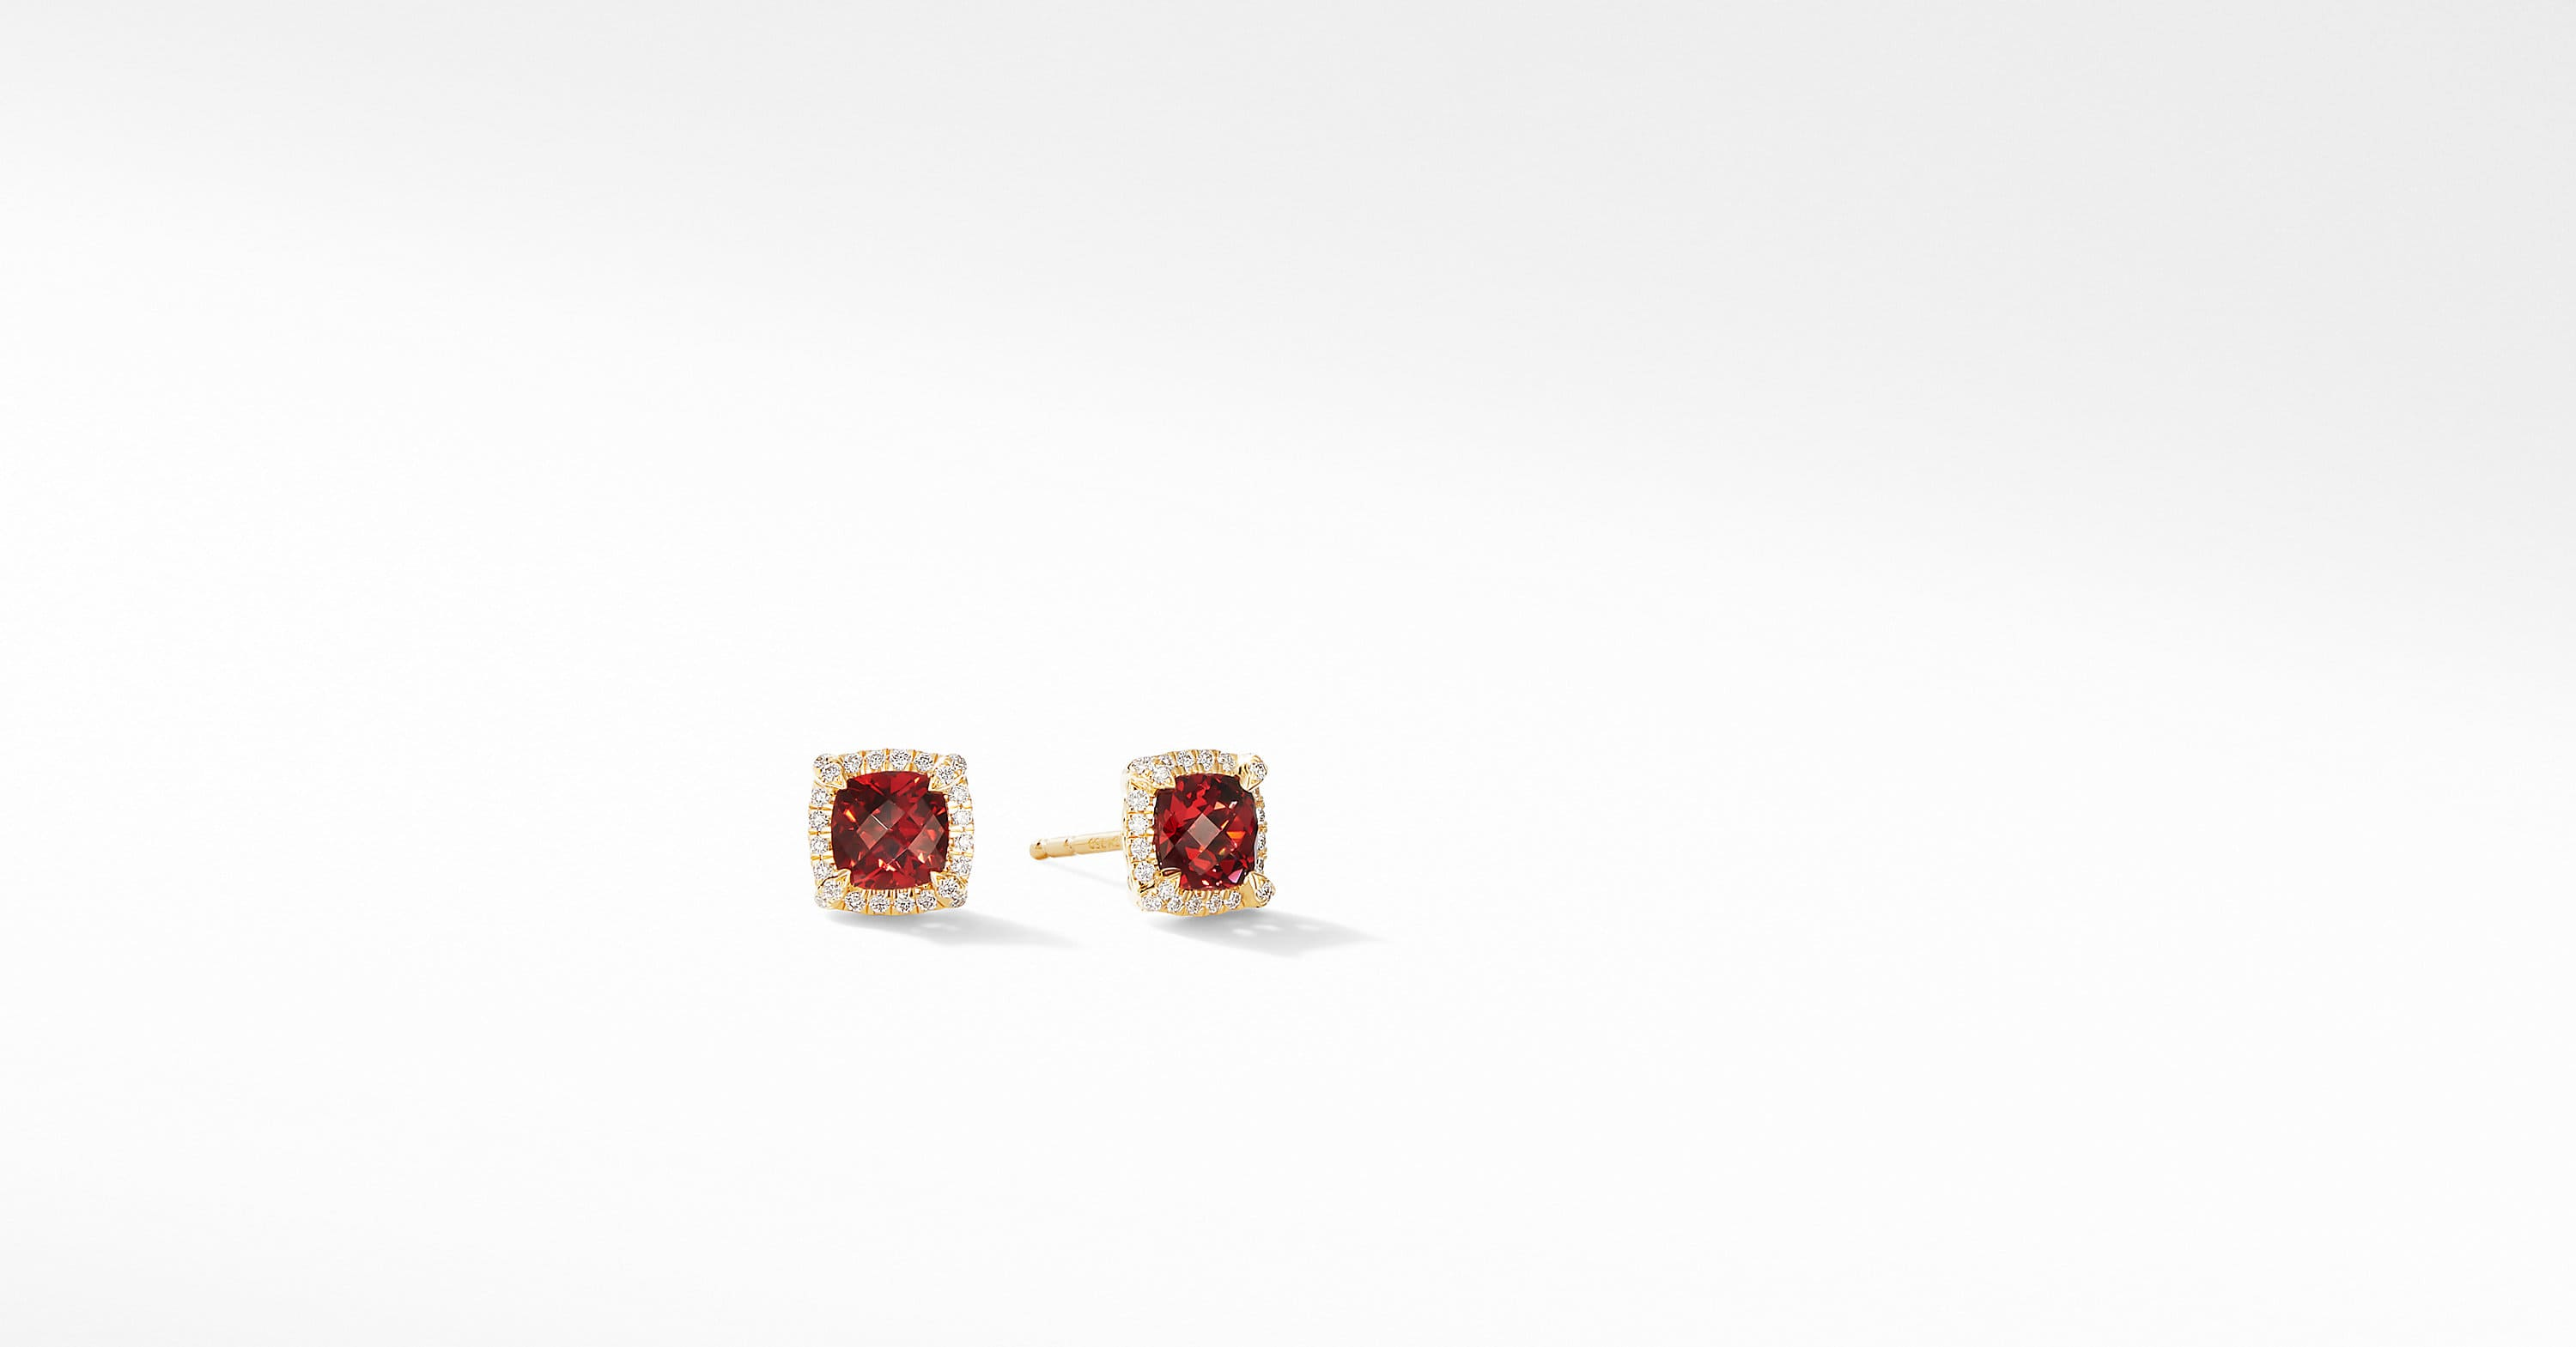 Petite Chatelaine Pavé Bezel Stud Earrings in 18K Yellow Gold, 5mm